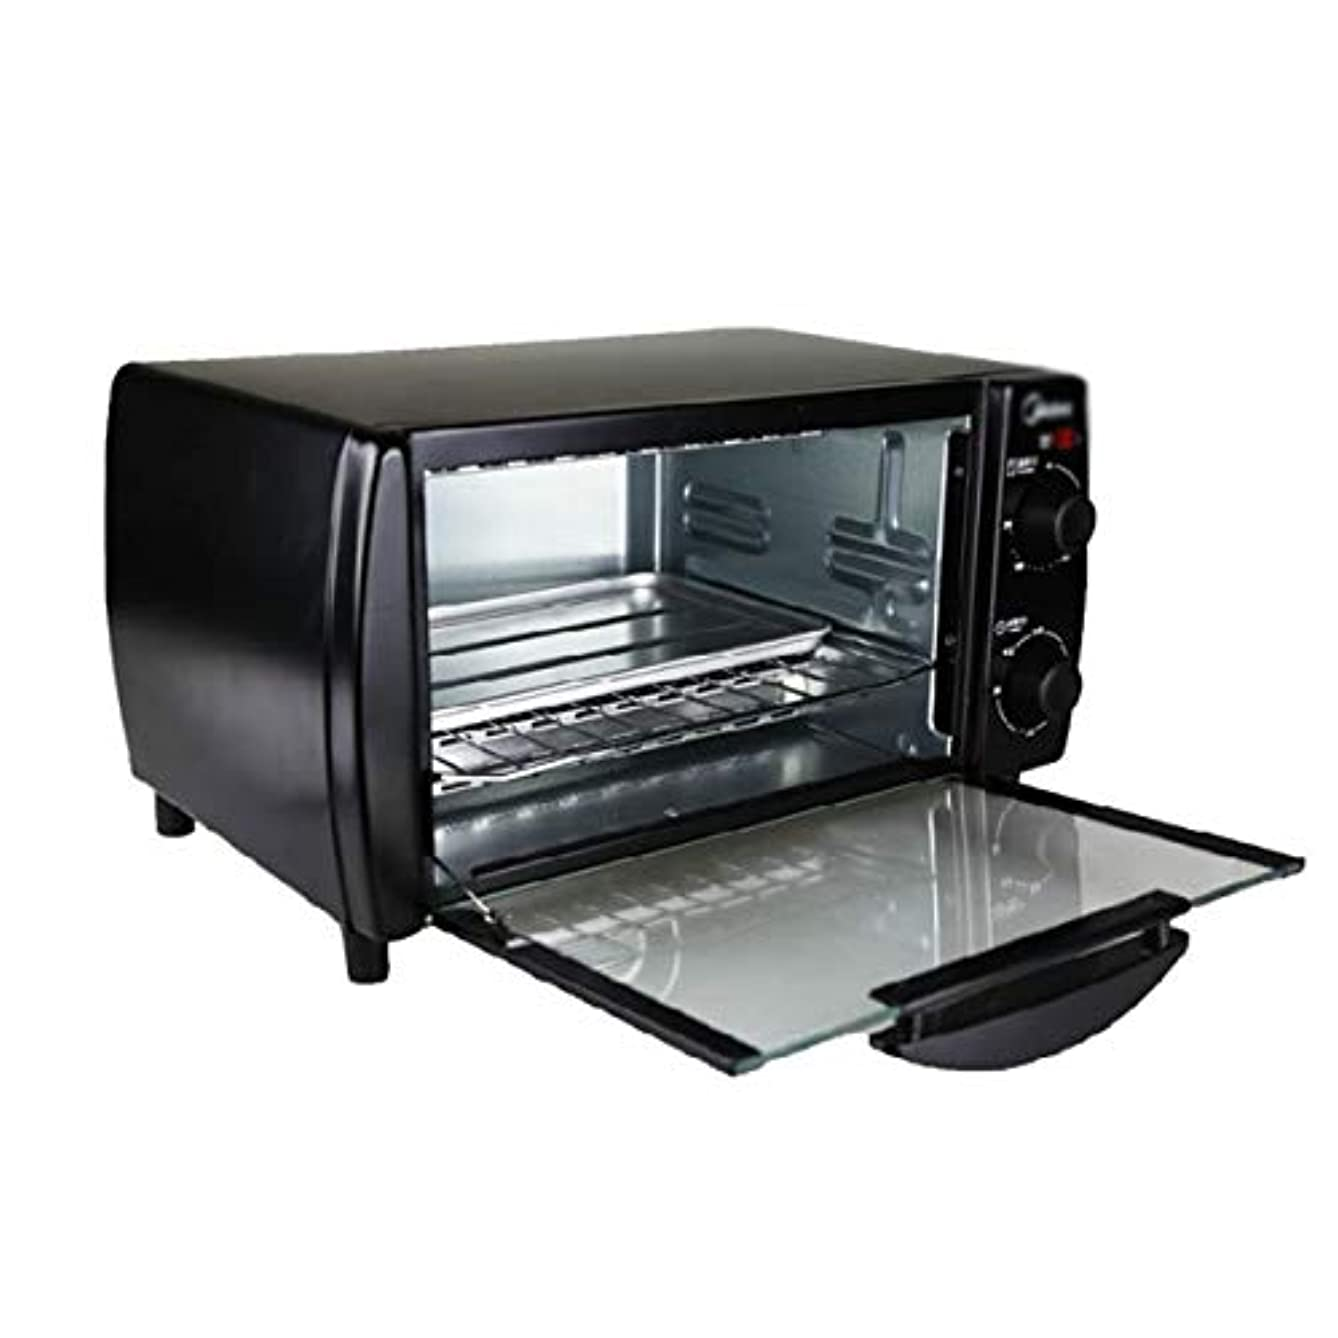 HATHOR-23 Oven Toaster Electric Oven Multi-function Household Baking Stainless Steel Oven Temperature Control Mini Cake -31 Oven